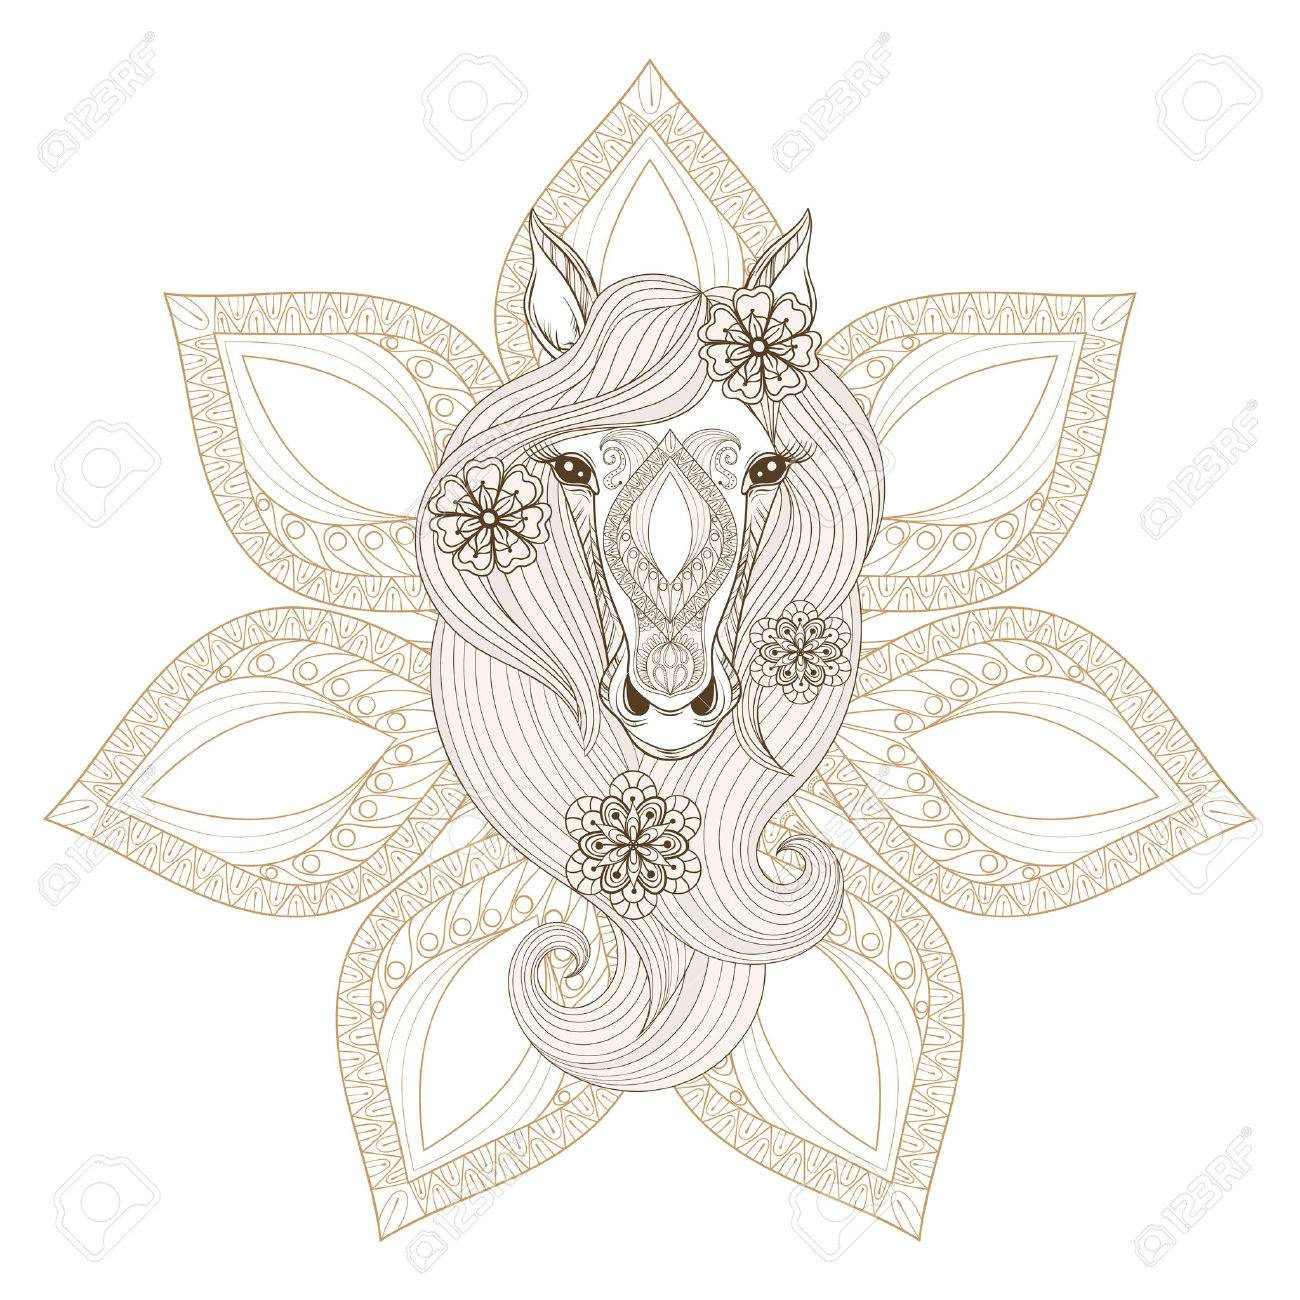 Vector Horse Coloring Page With Horse Face On Mandala Background